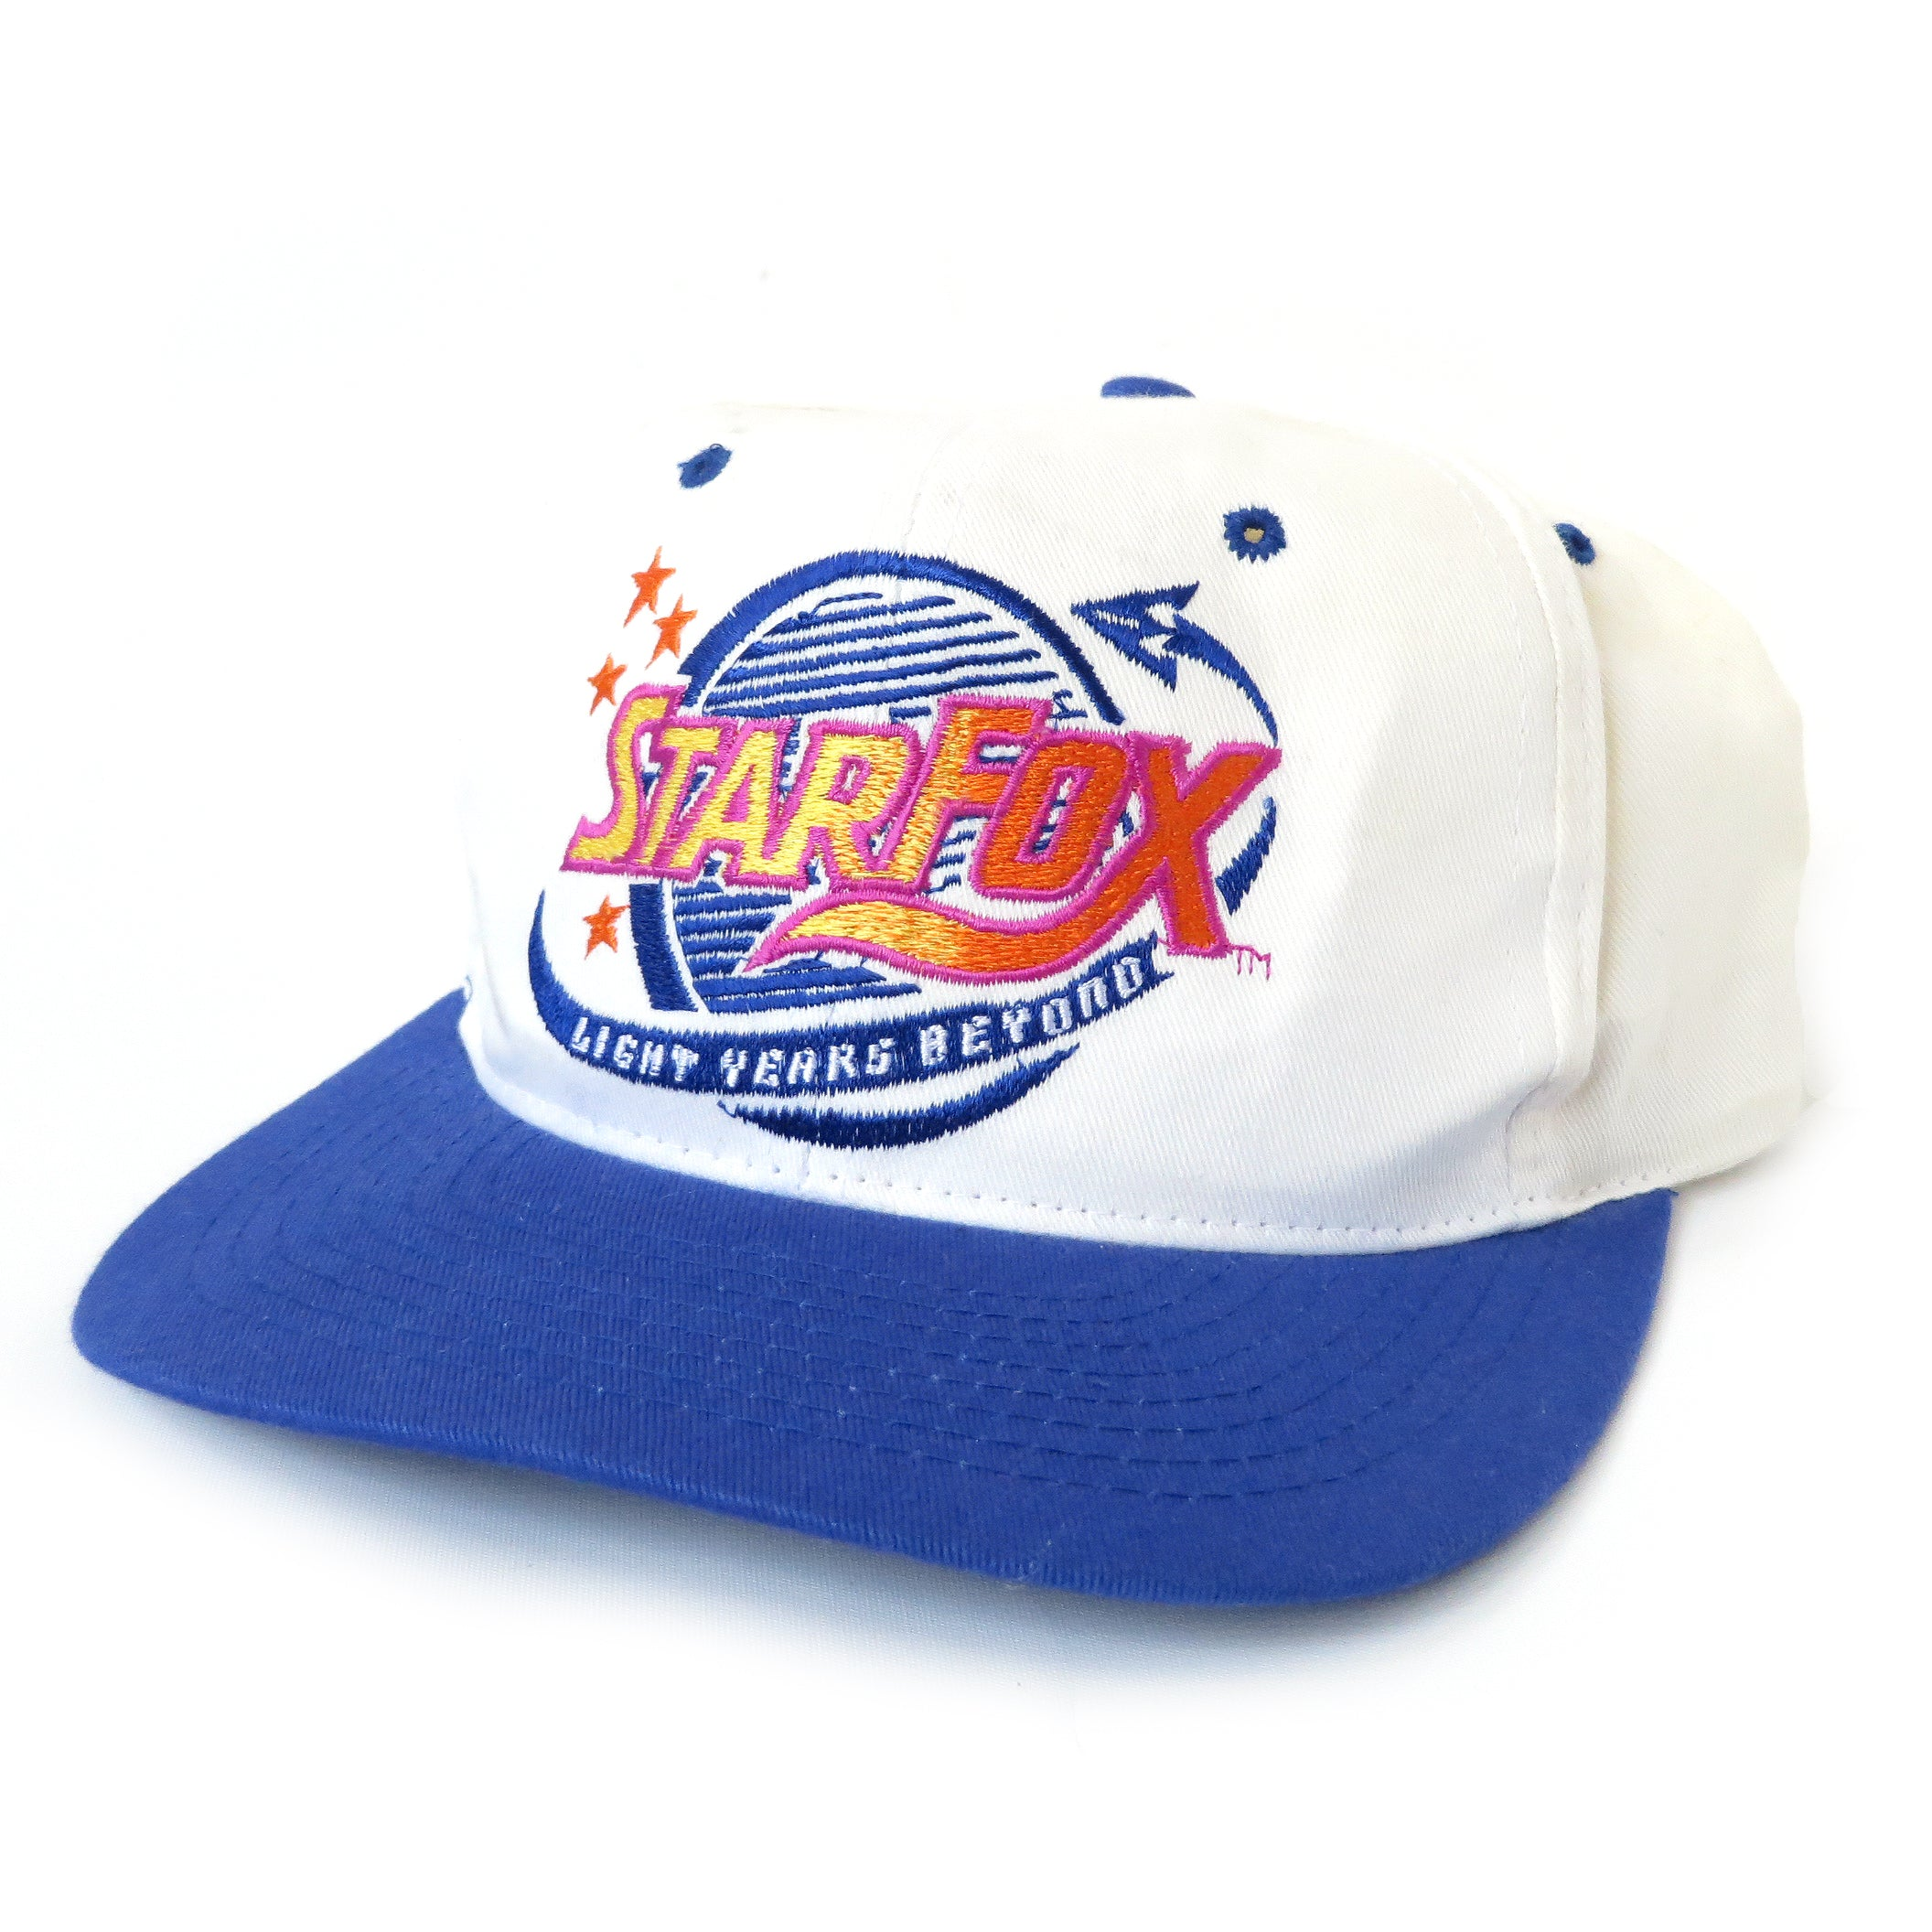 Vintage Starfox Light Years Beyond Snapback Hat